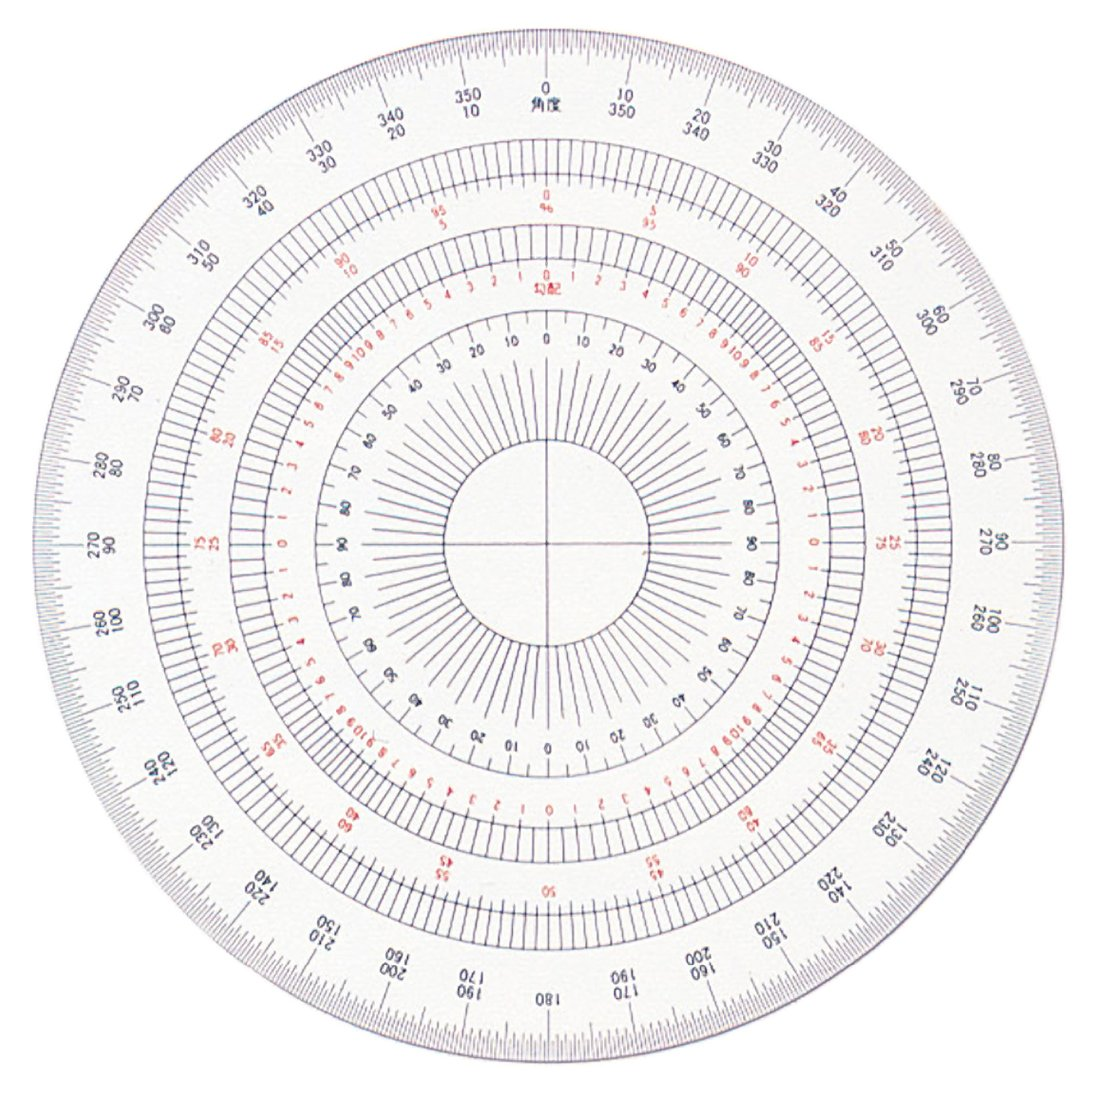 360 degree circle diagram banshee wiring help full protractor template printable